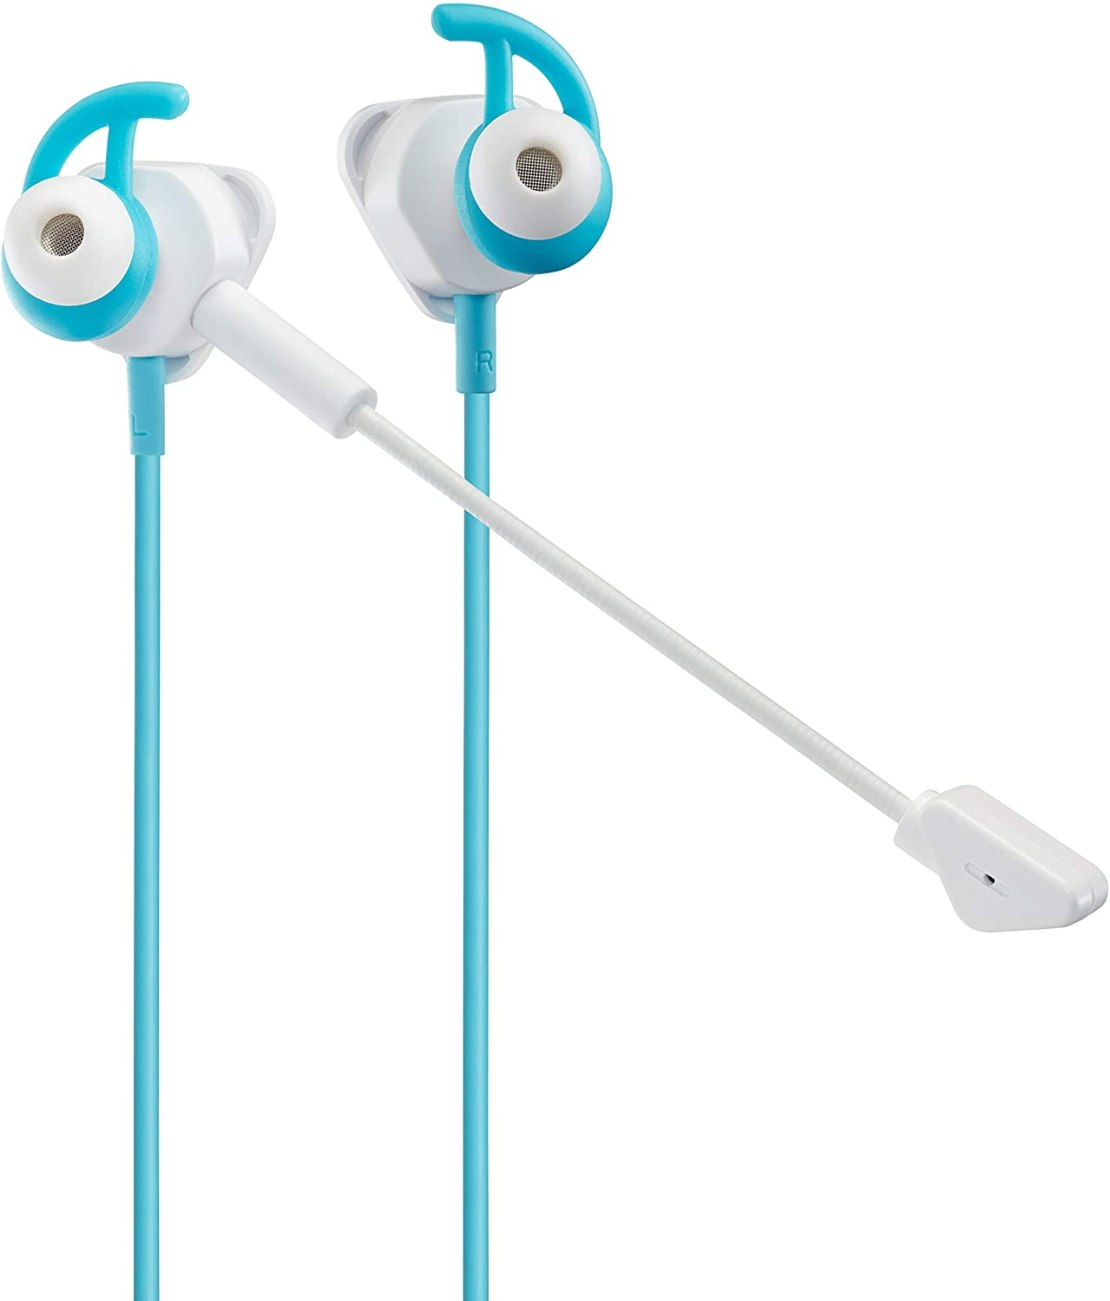 Turtle Beach Battle Buds In-Ear Universal Gaming Headset - White/Teal